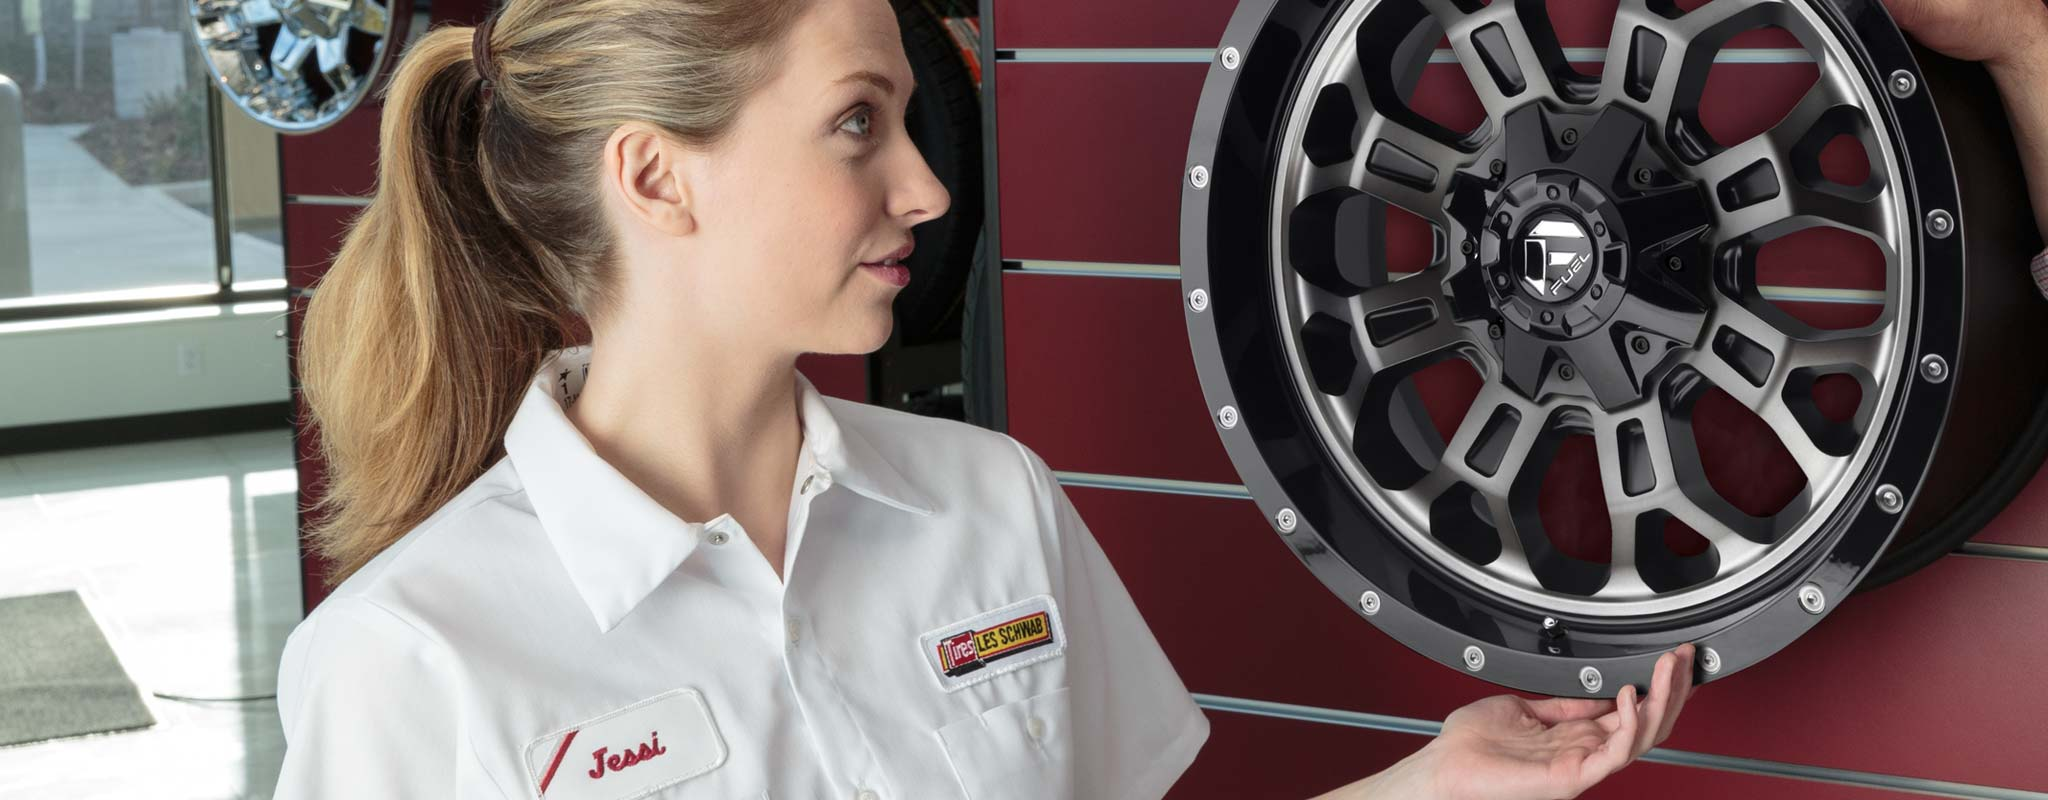 A Les Schwab saleswoman shows a custom wheel to a customer.